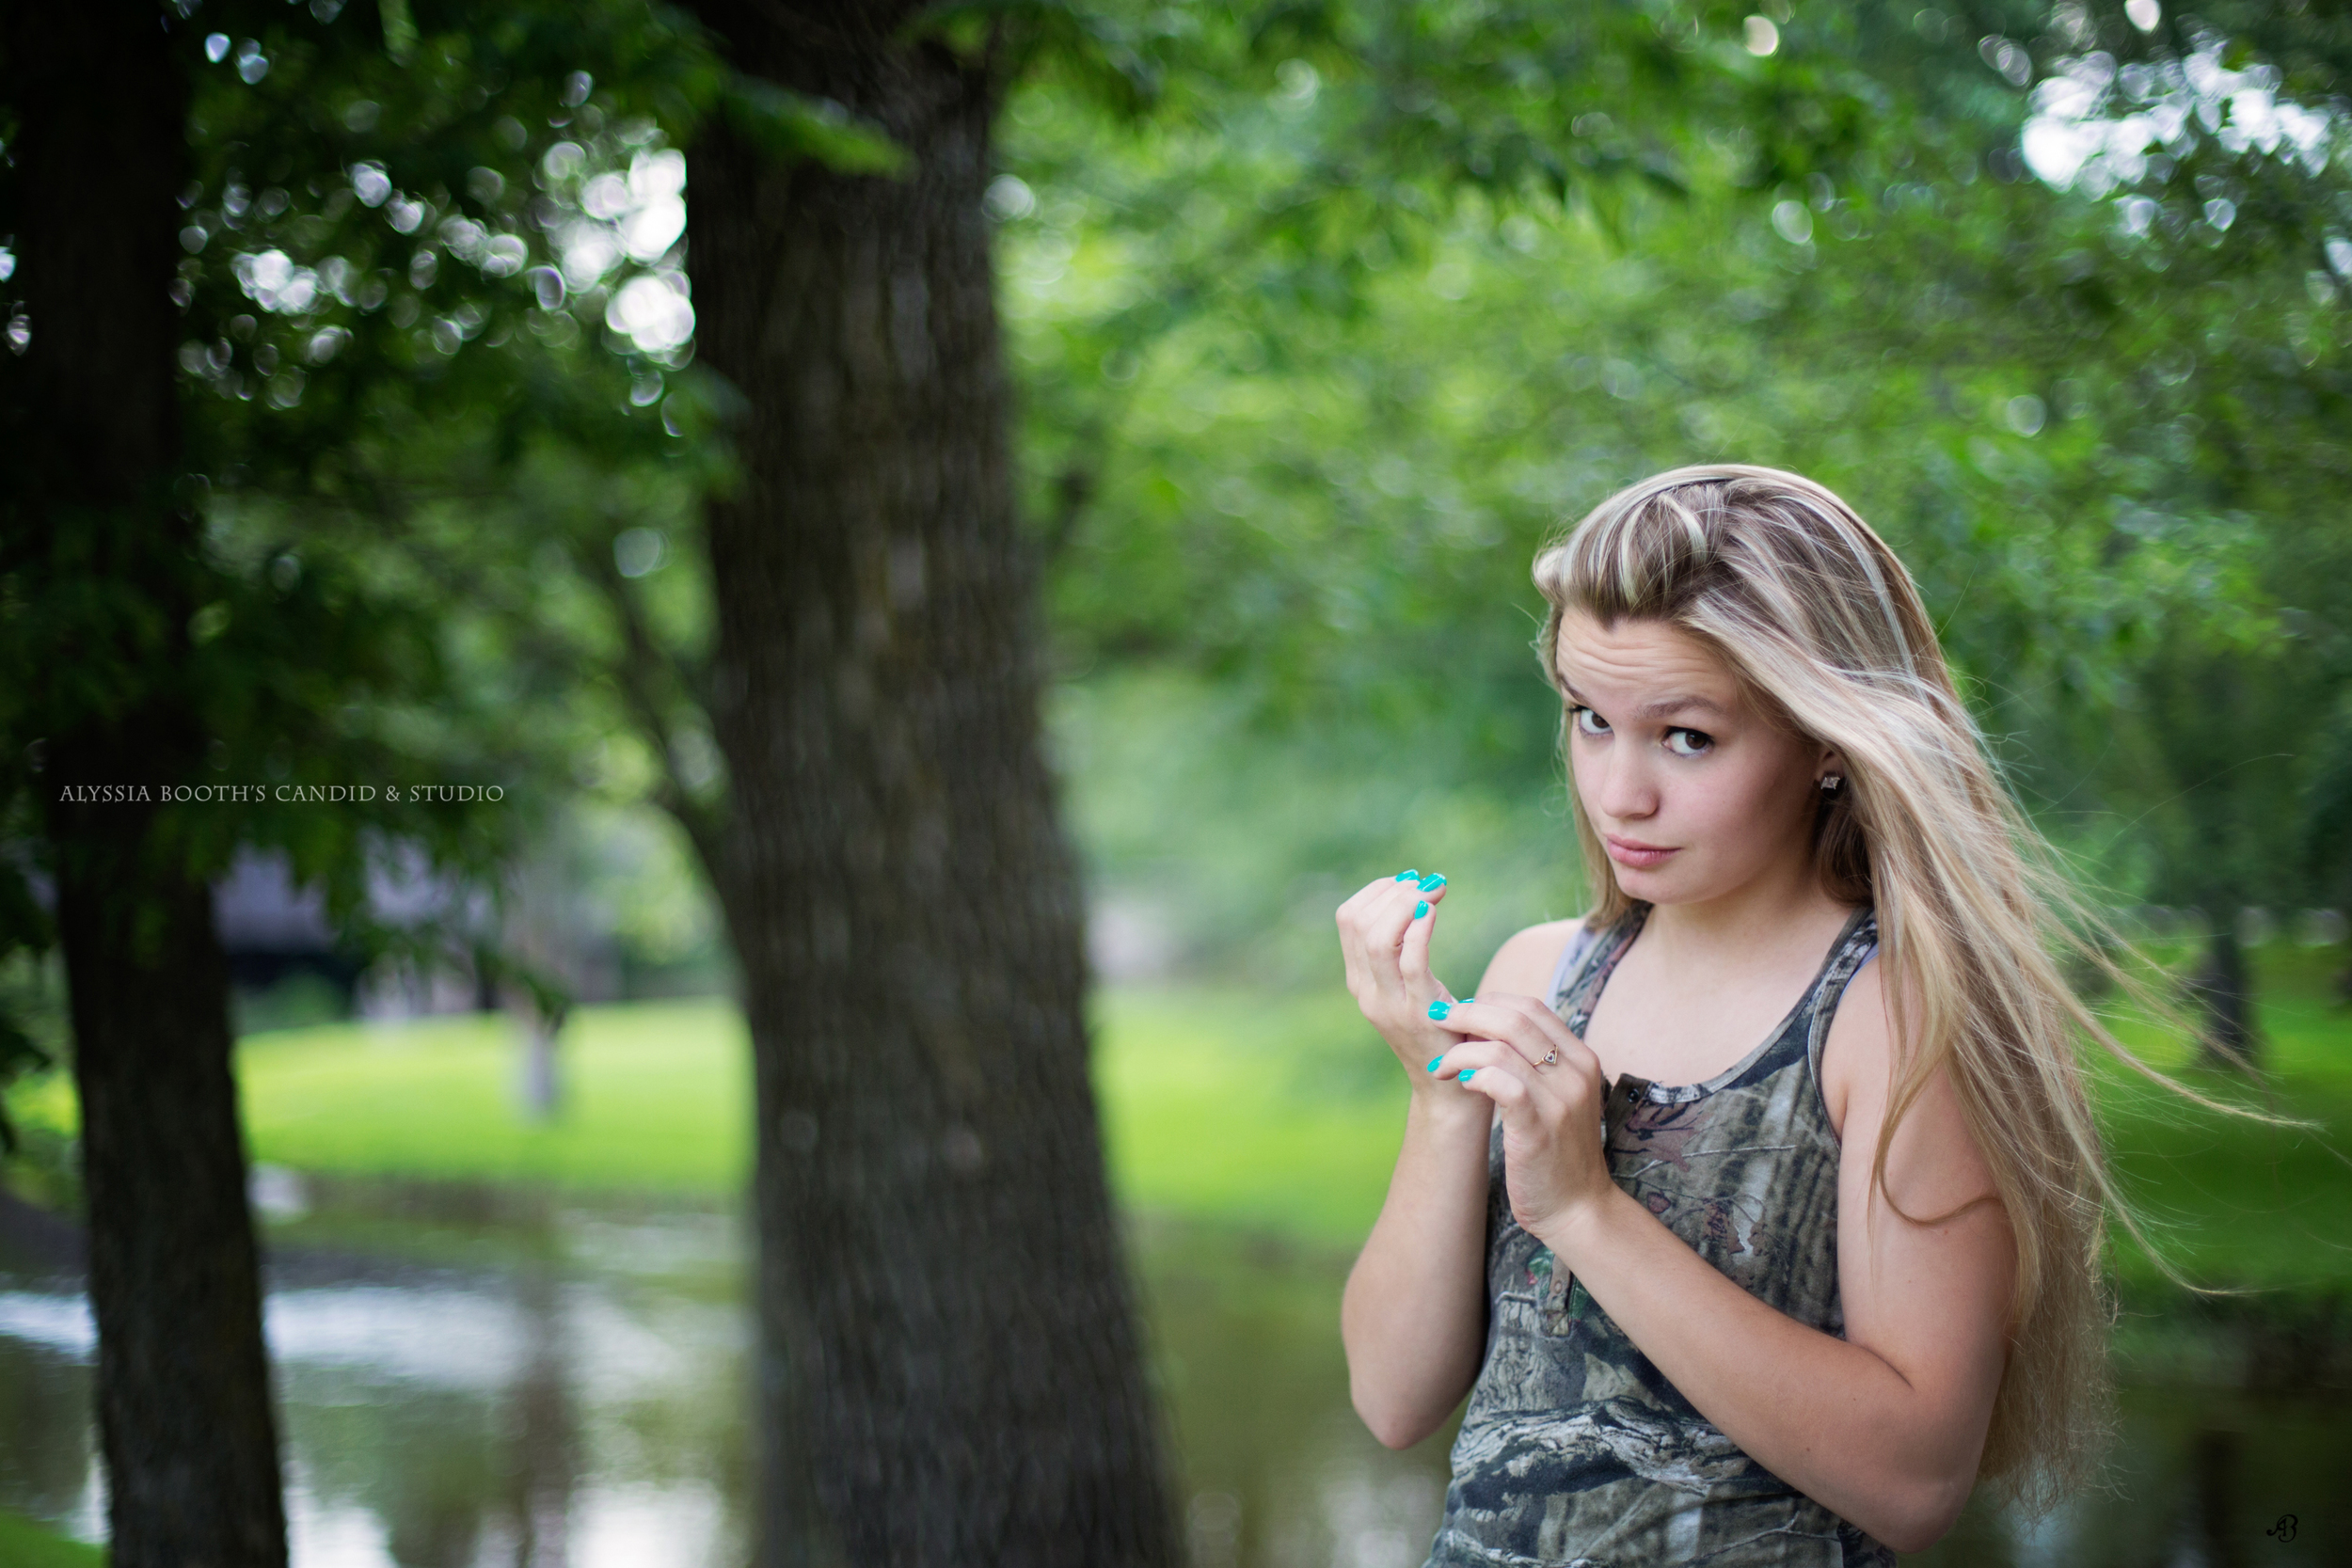 Attitude | Senior Portraits | Alyssia Booth's Candid & Studio | Okemos Mi | Wisconsin Photoshoot